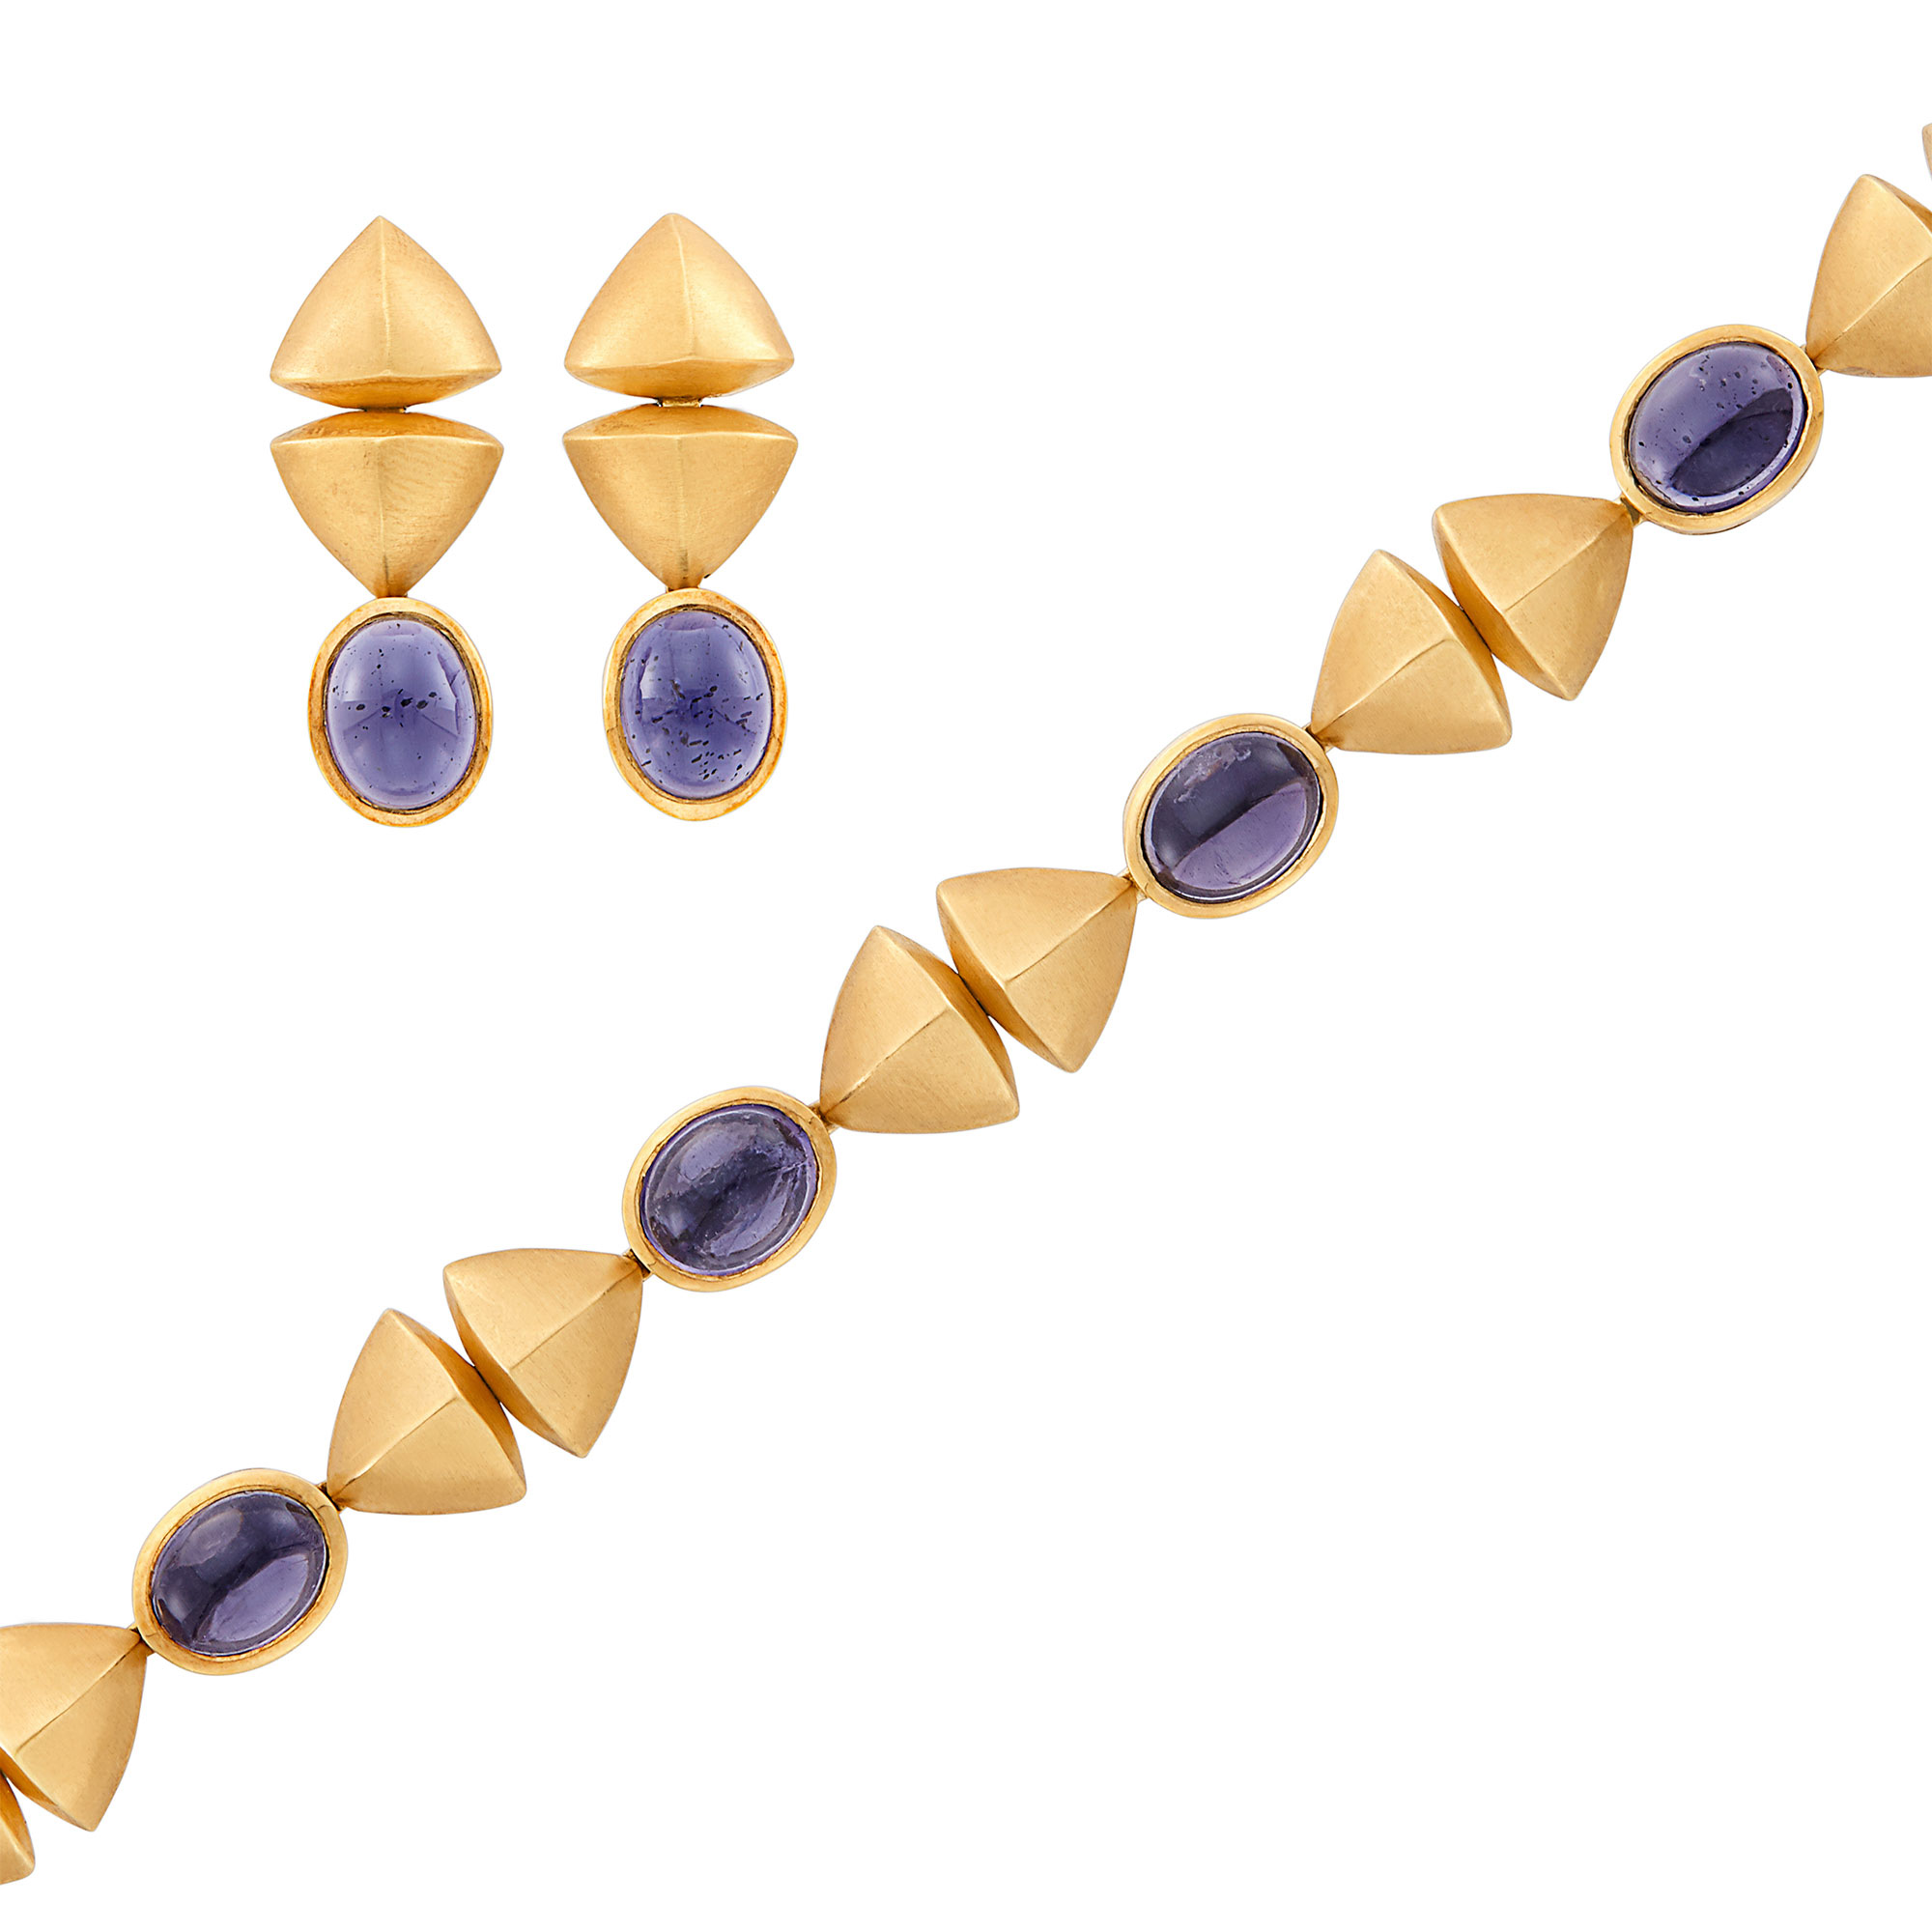 Lot image - Gold, Cabochon Iolite Bracelet and Pair of Pendant-Earrings